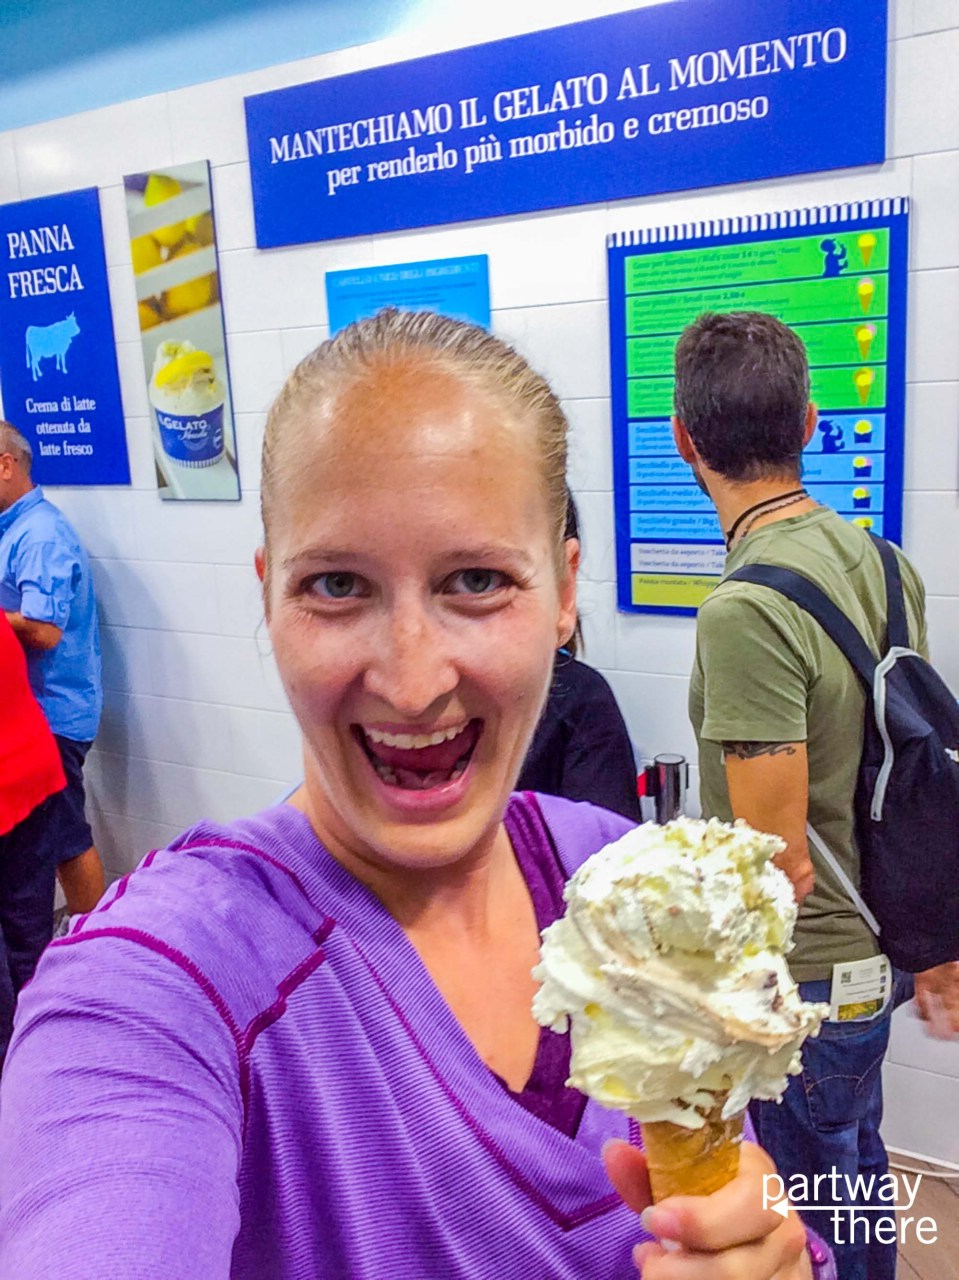 Amanda Plewes with a giant cone of Menella Rock and Almond gelato from Menella in Naples, Italy